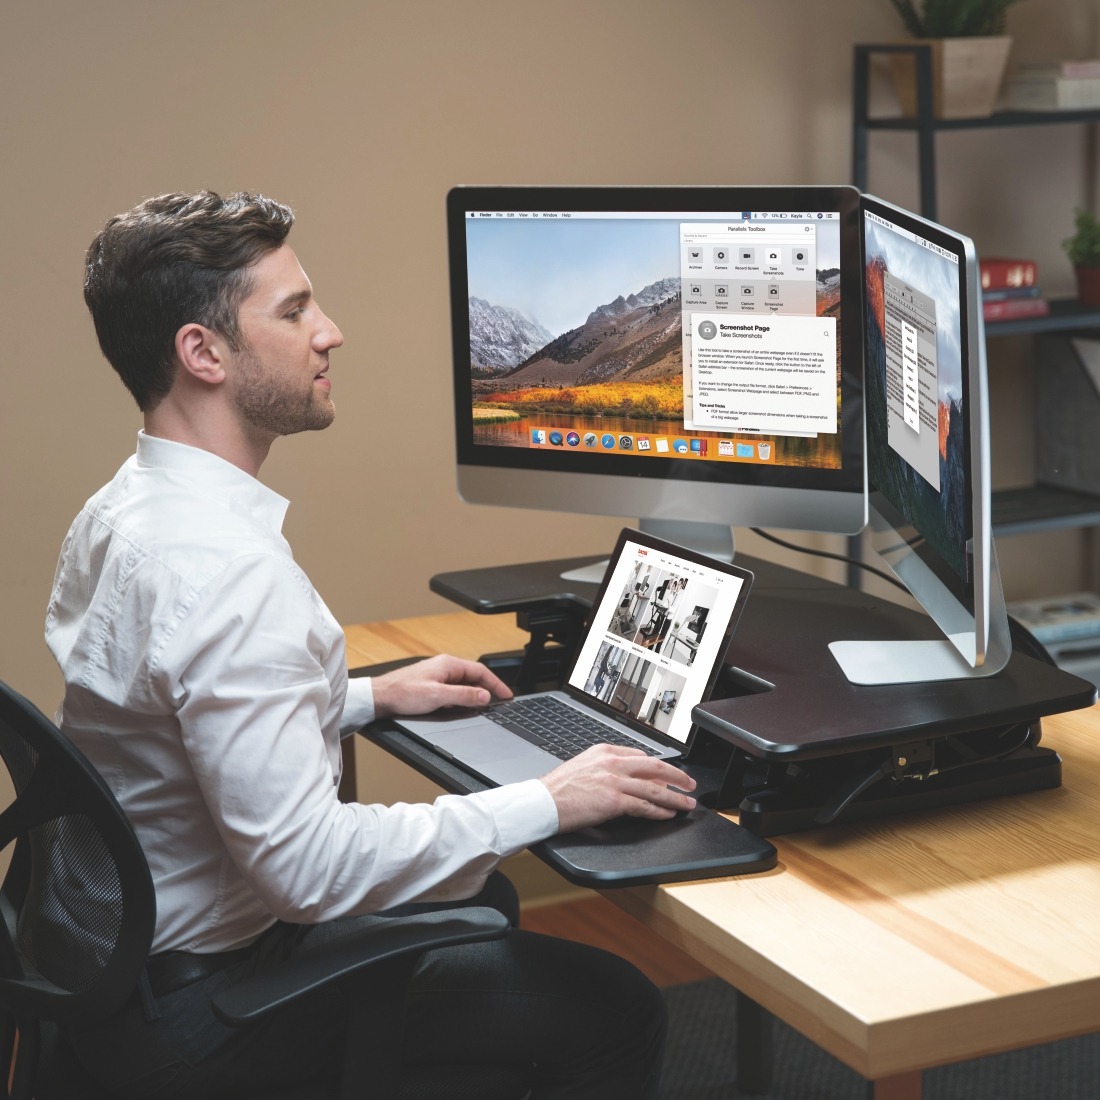 MT107M man sitting two large monitors and laptop